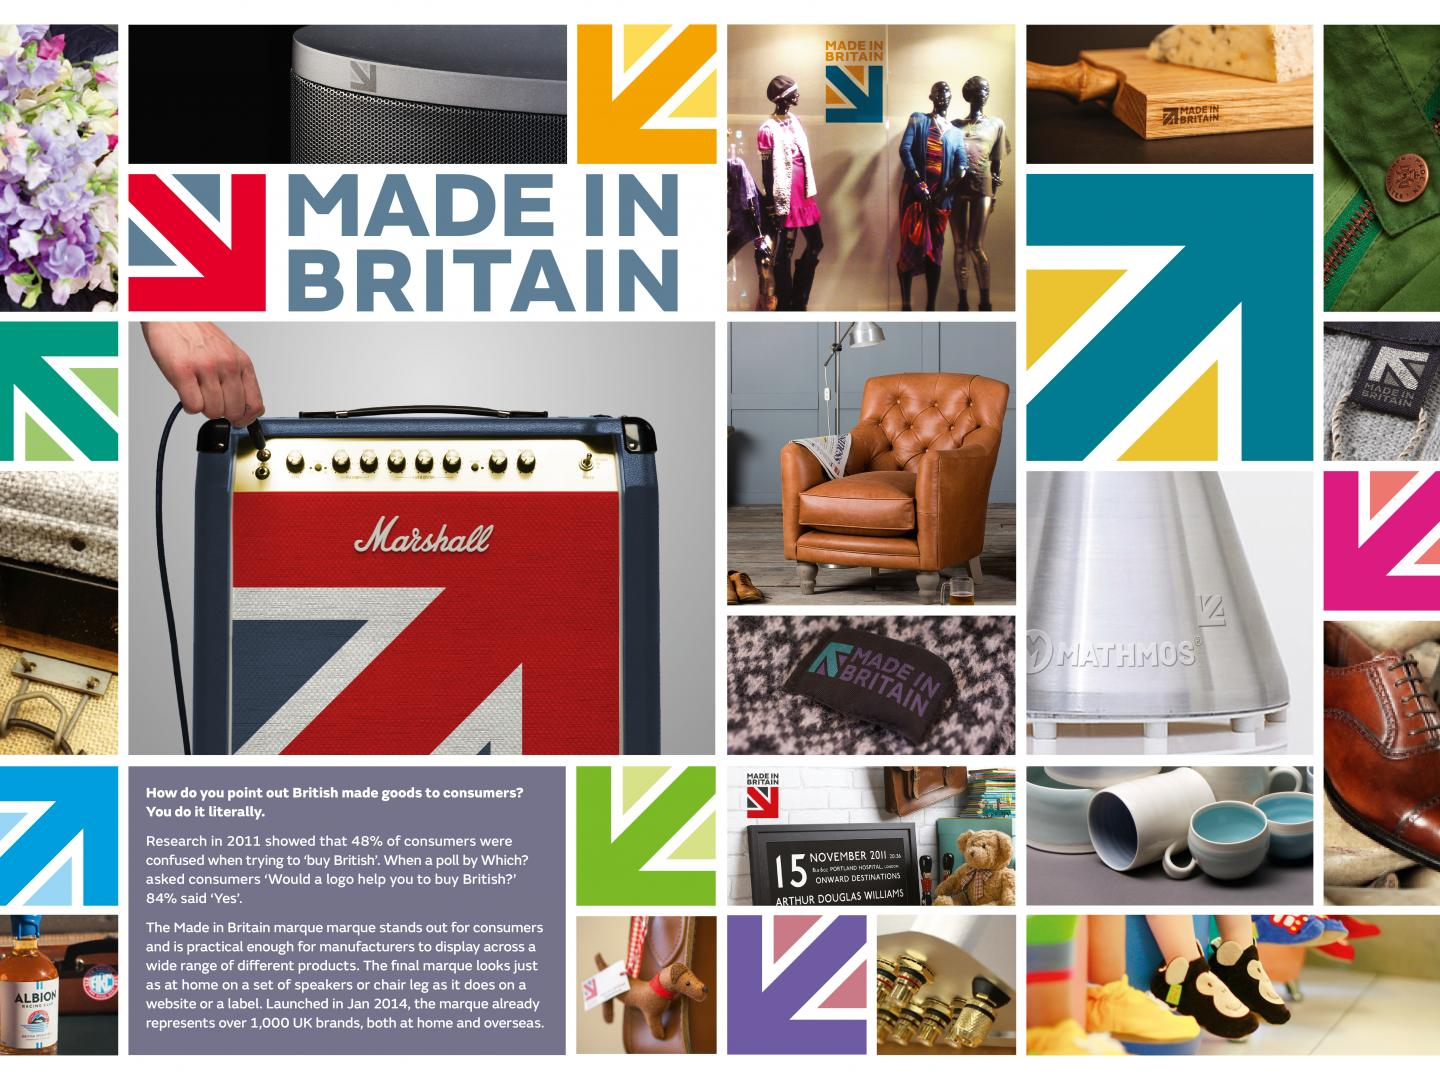 Made in Britain Thumbnail